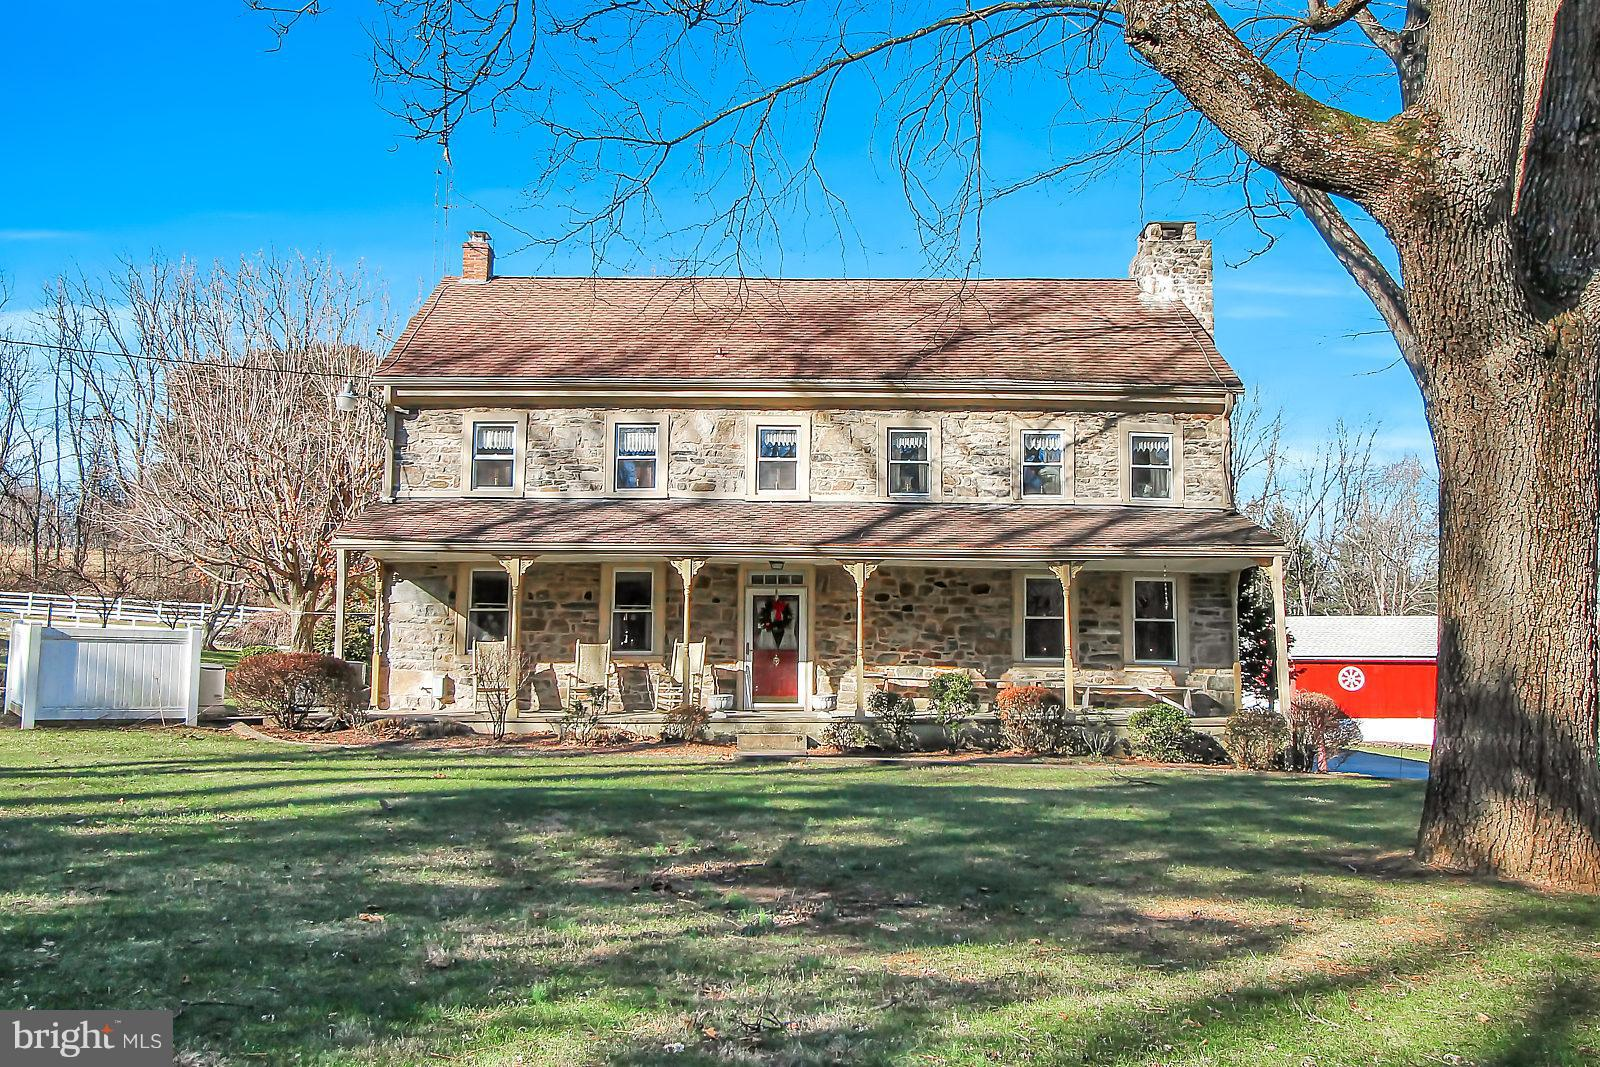 58 TOWNSHIP ROAD, MACUNGIE, PA 18062